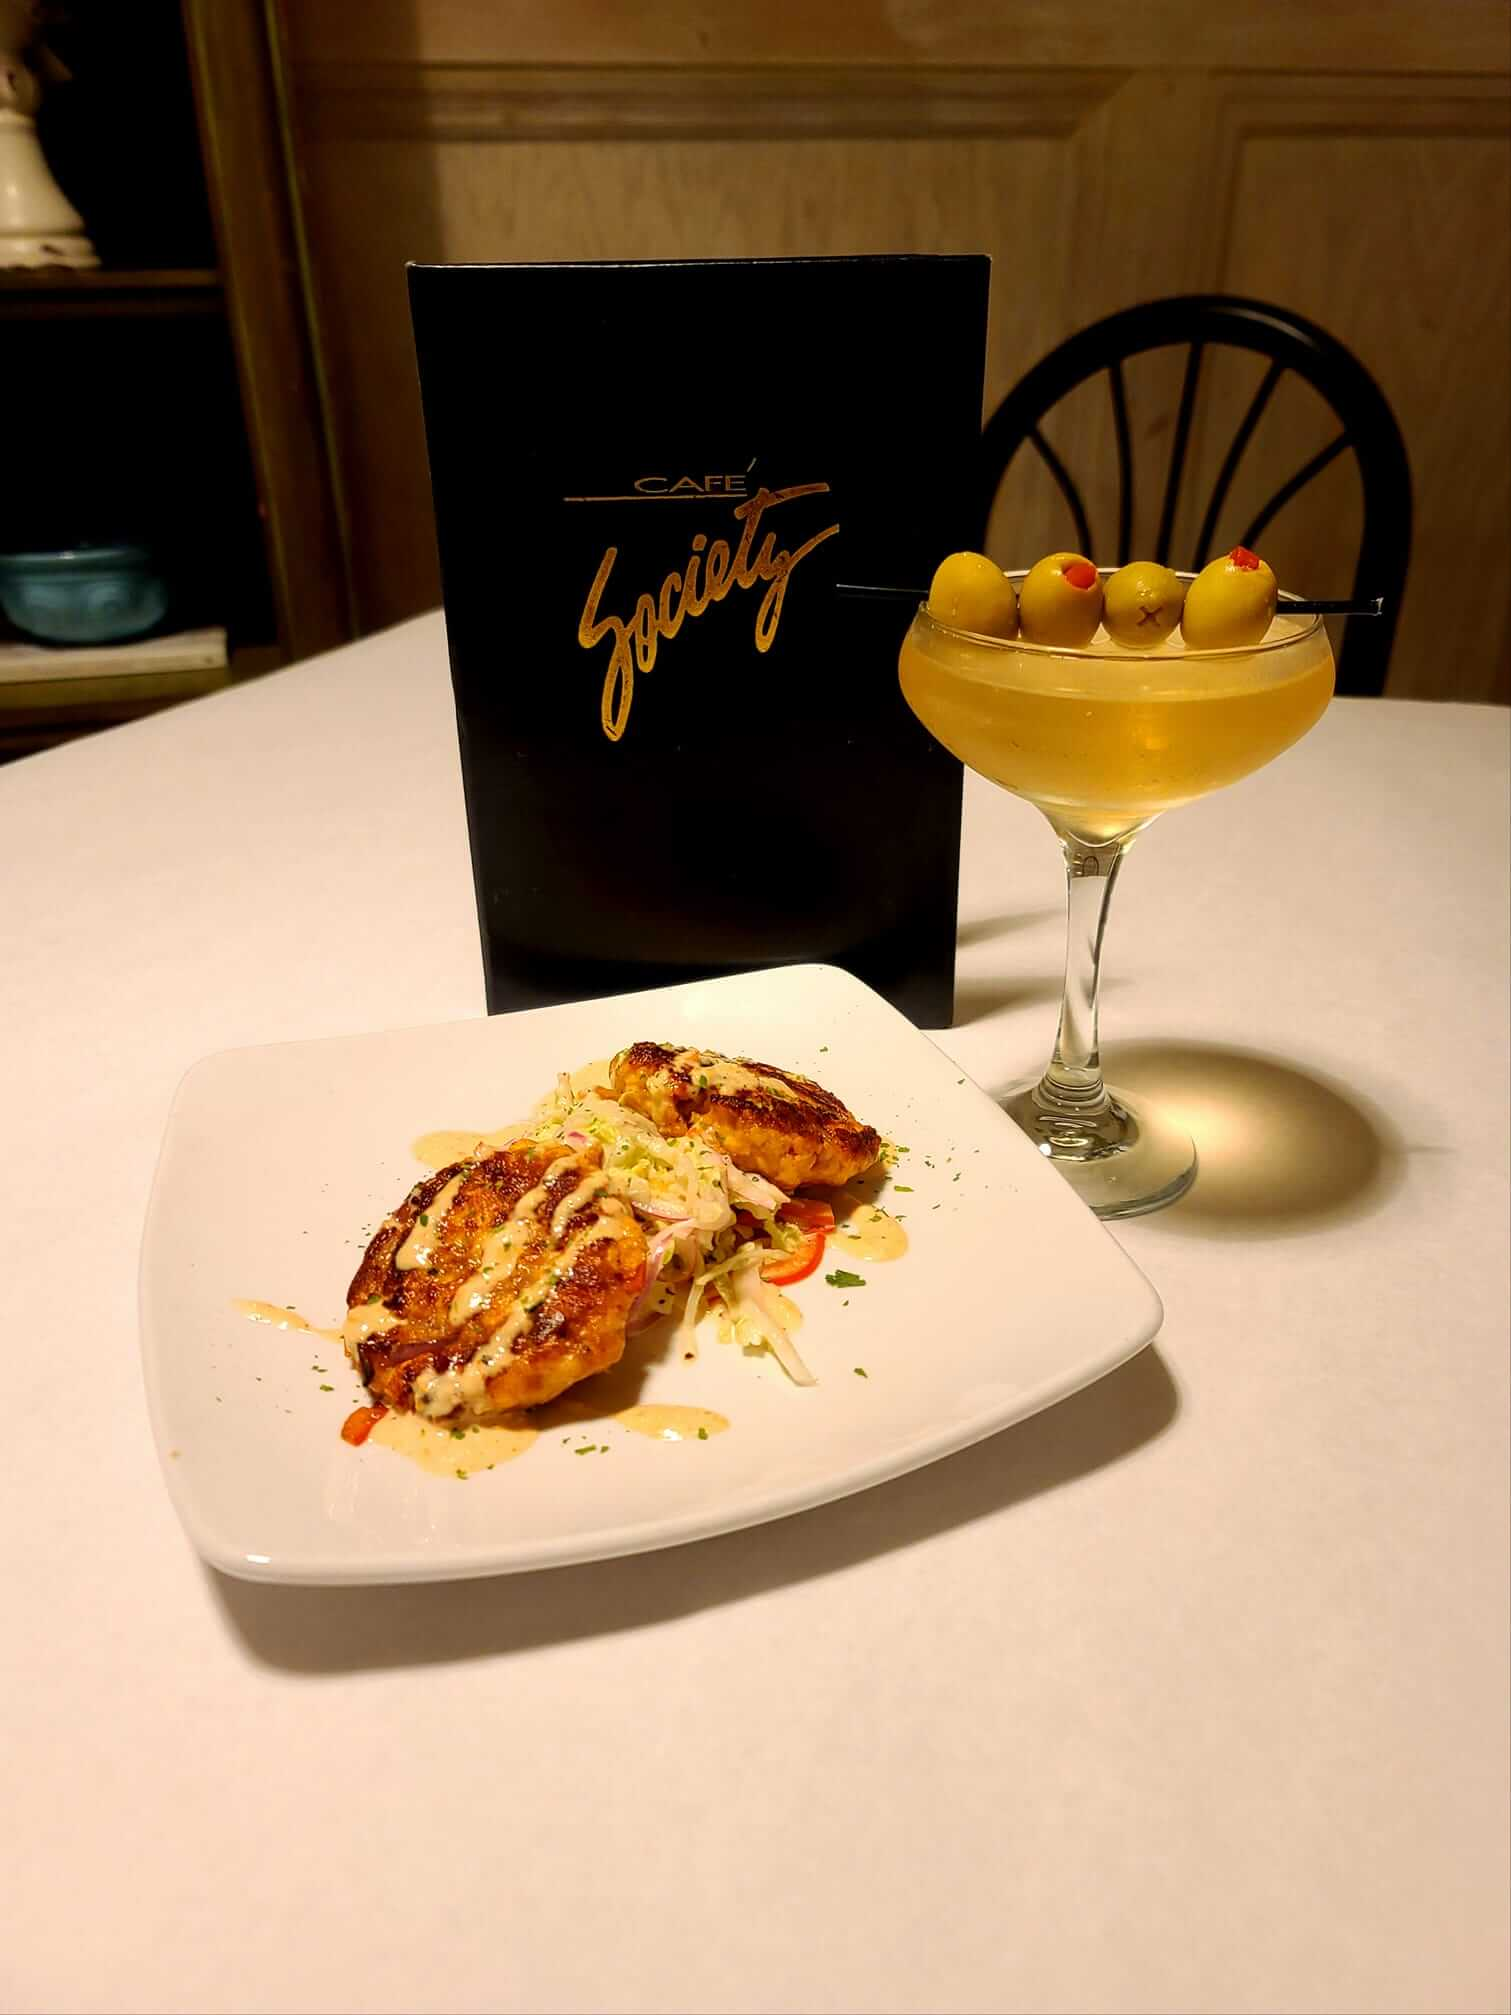 Salmon cakes and martini from Café Society Restaurant